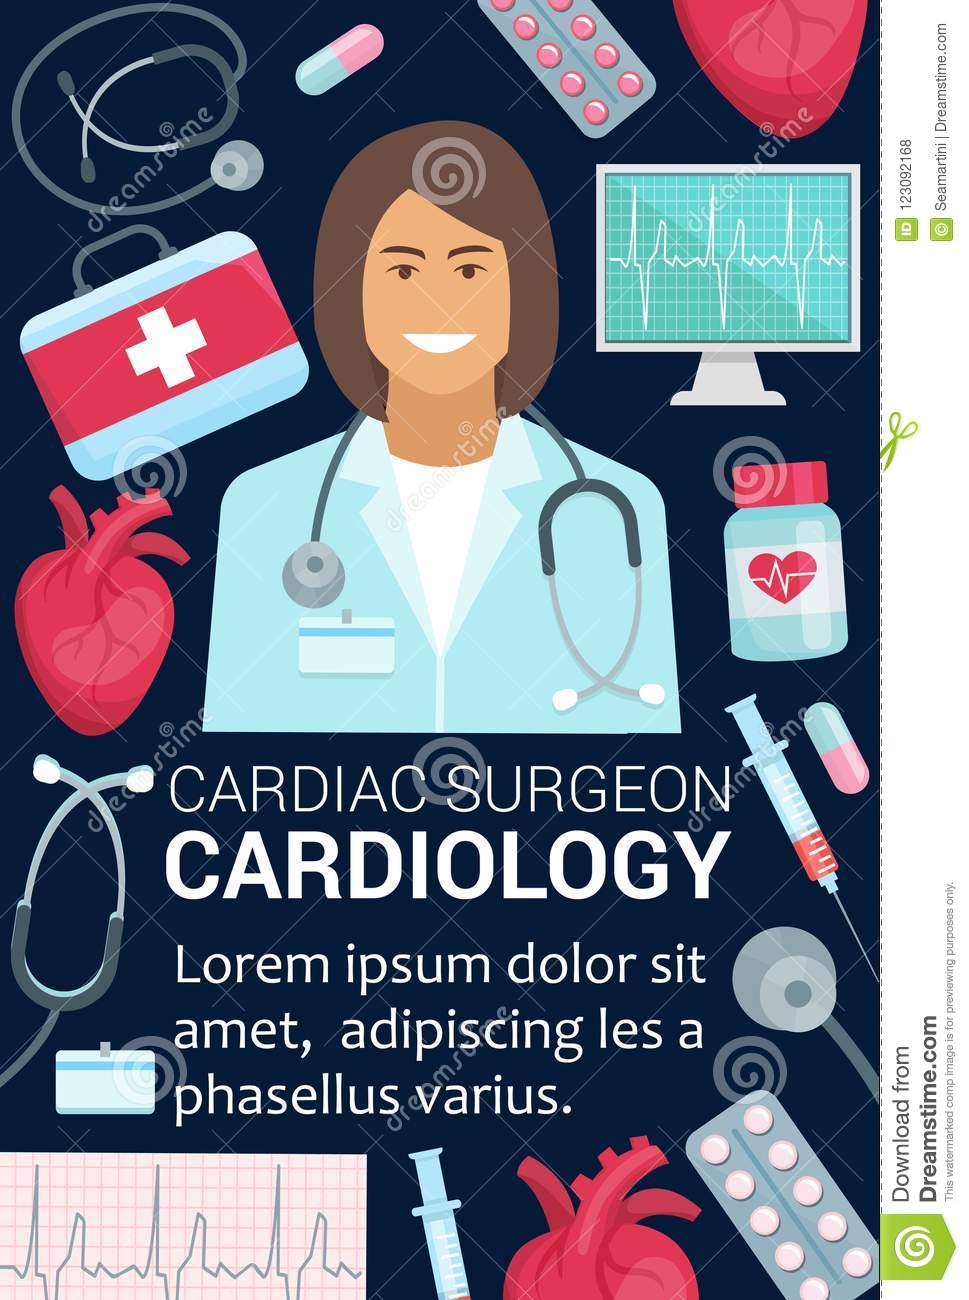 Cardiology Surgeon Doctor And Heart Medical Poster Stock Vector Illustration Of Help Care 123092168